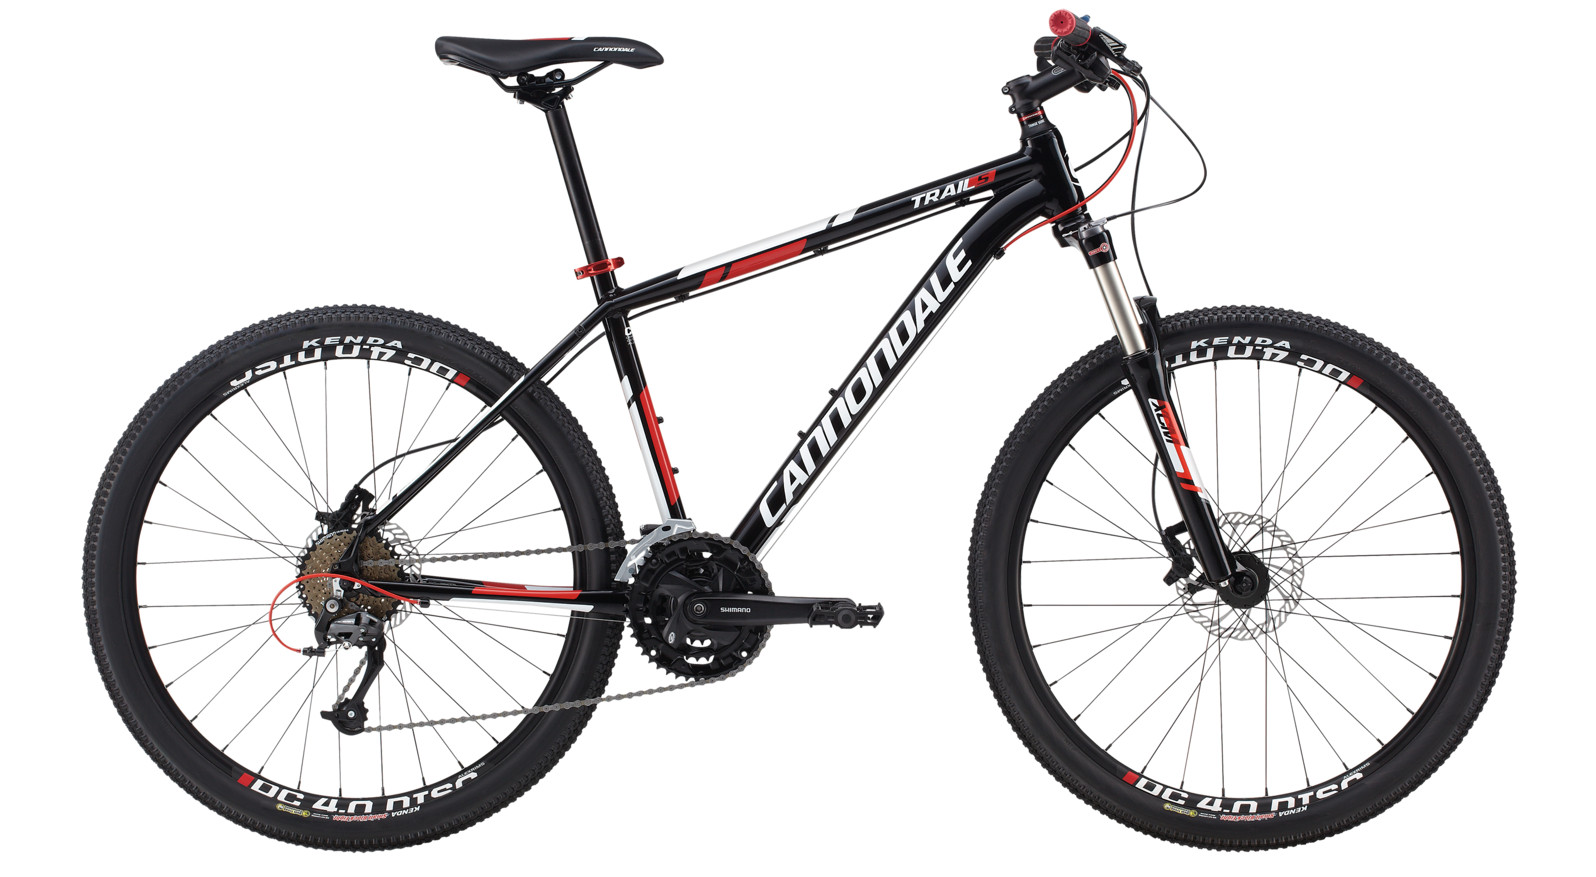 bike - 2014 Cannondale Trail 5